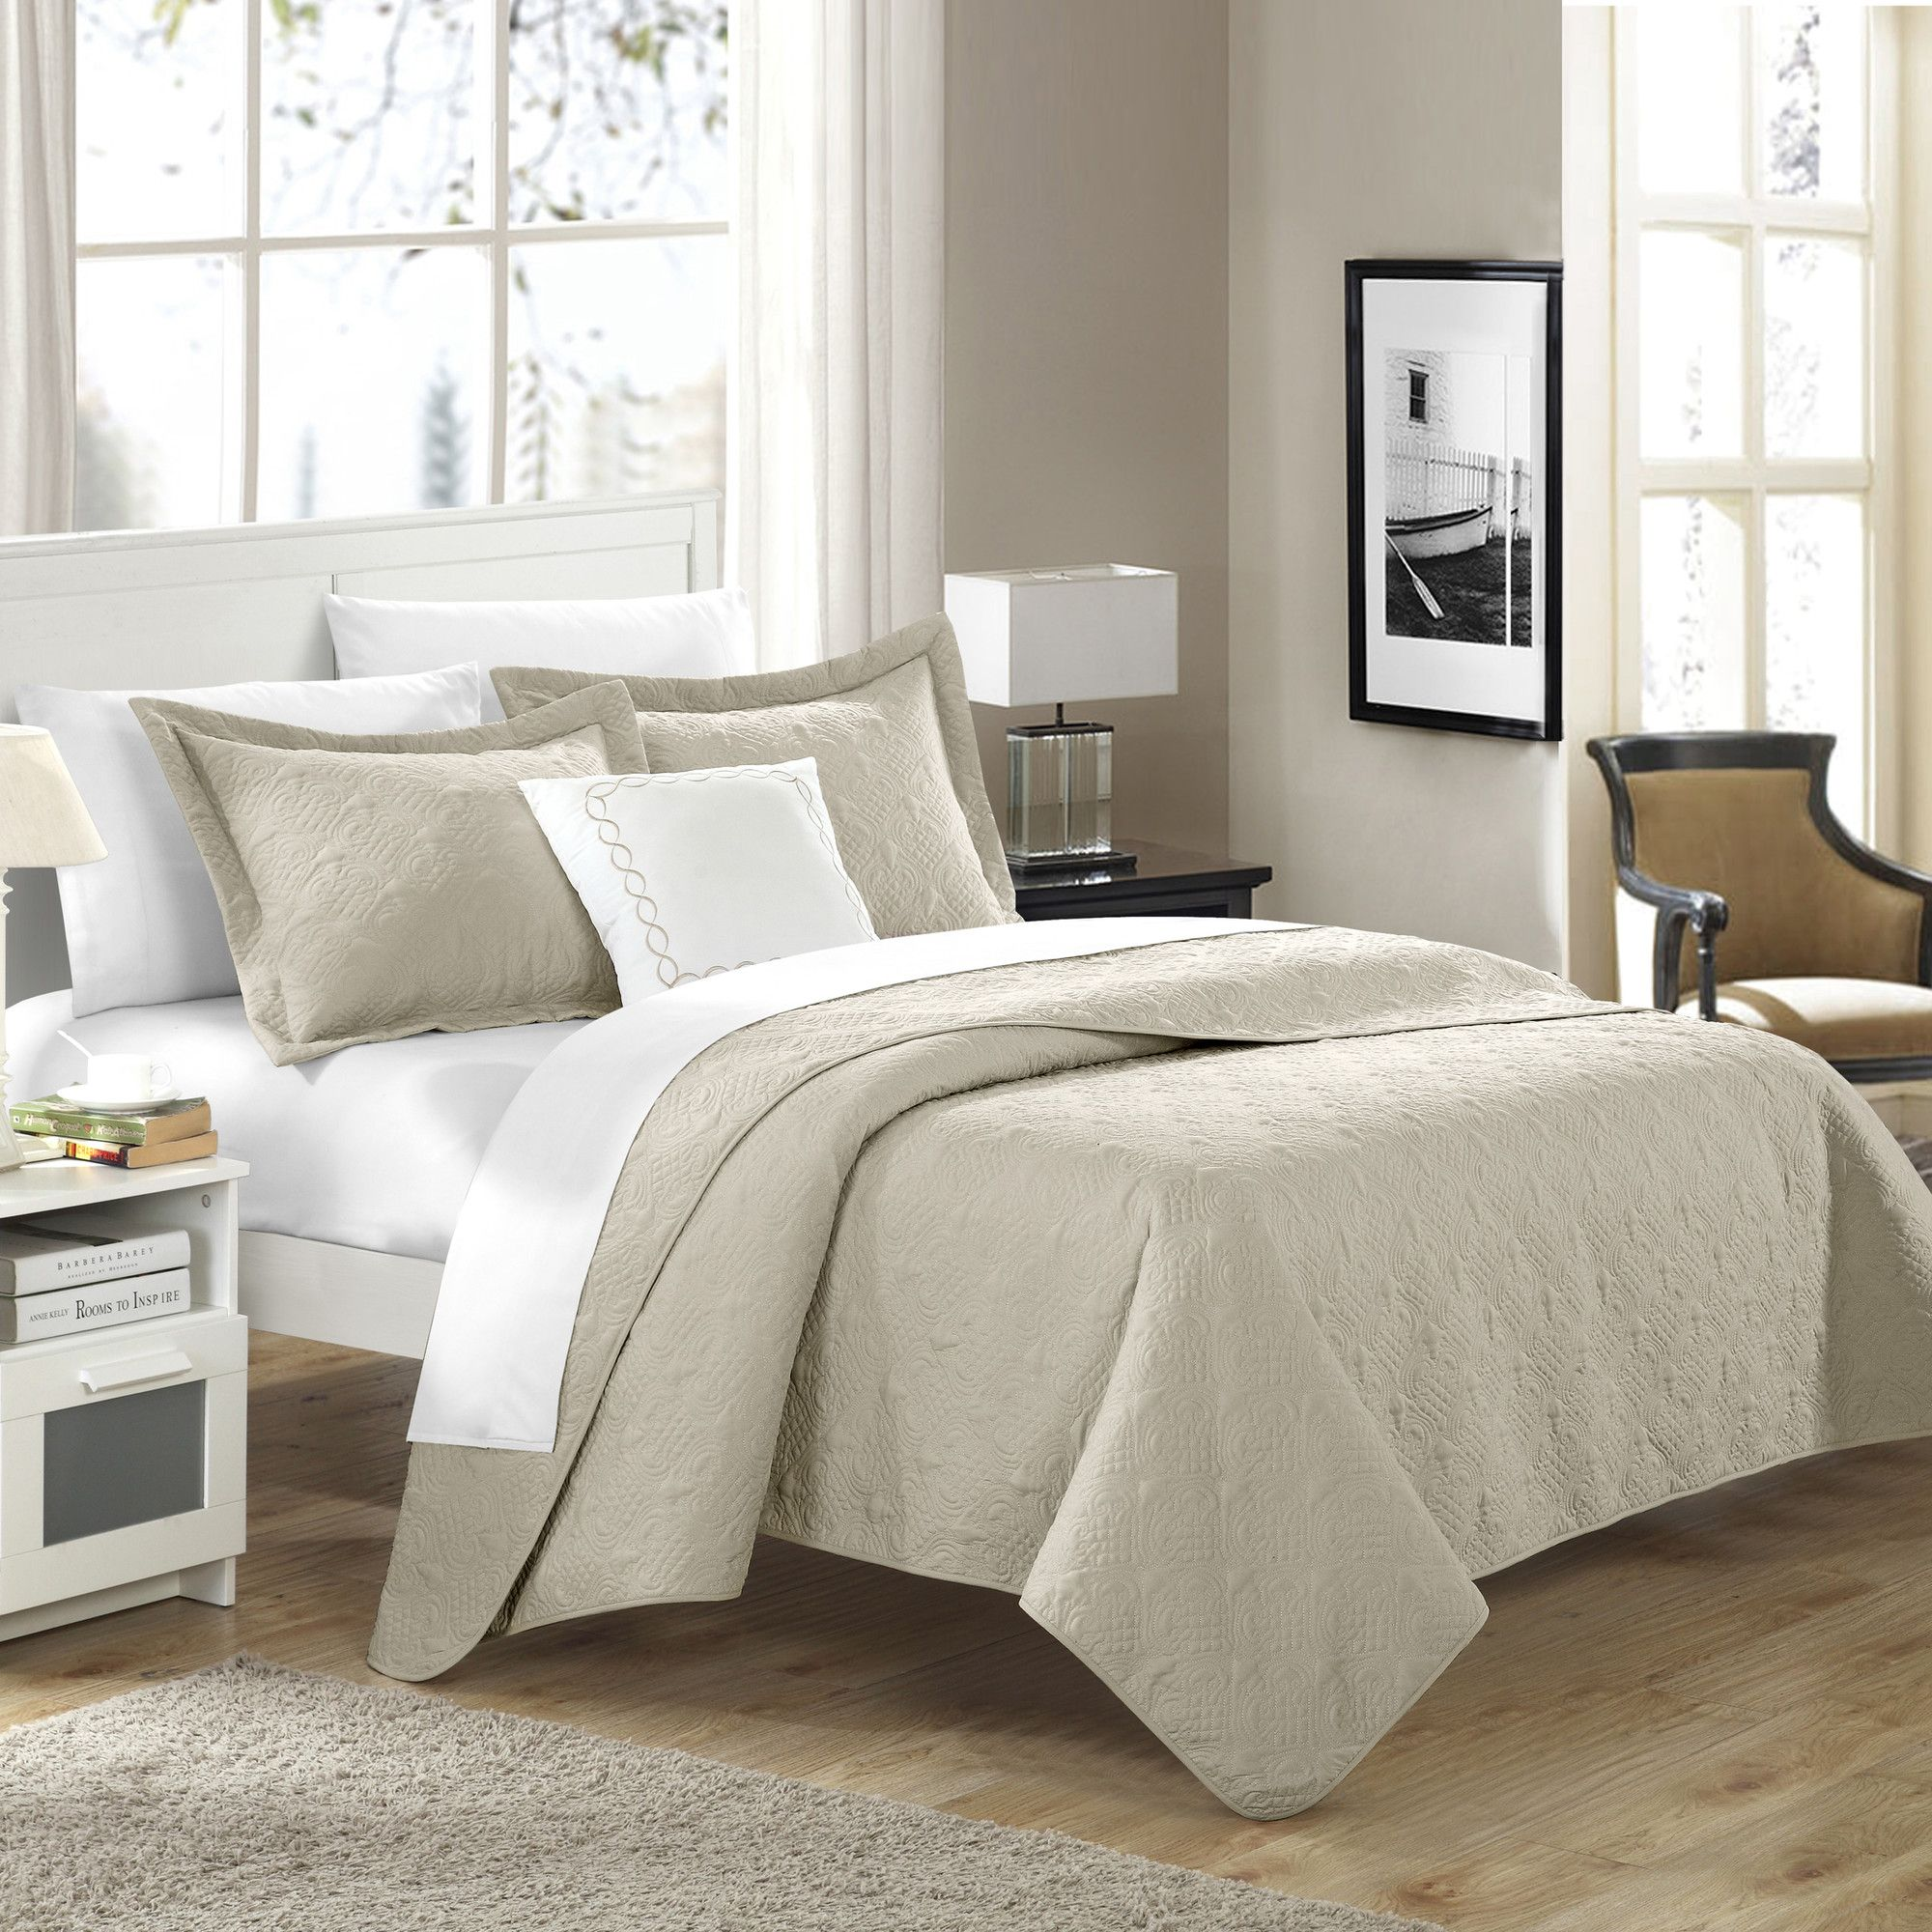 bedroom king unique cover bedding sheet bed contemporary linen main and super of size stylish full for mattress sheets set